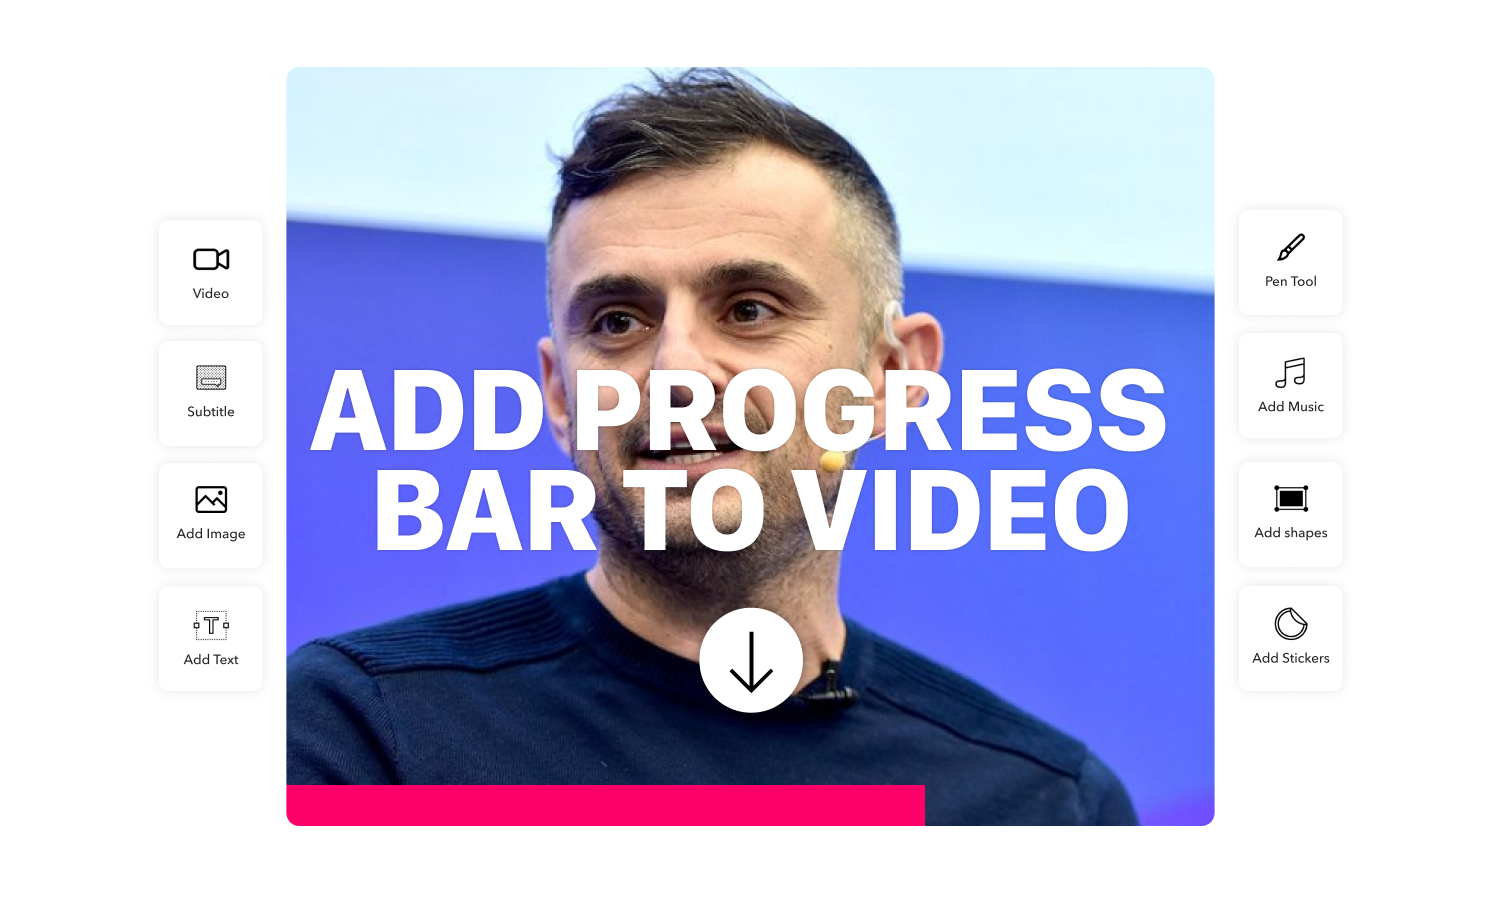 How to add a progress bar to video